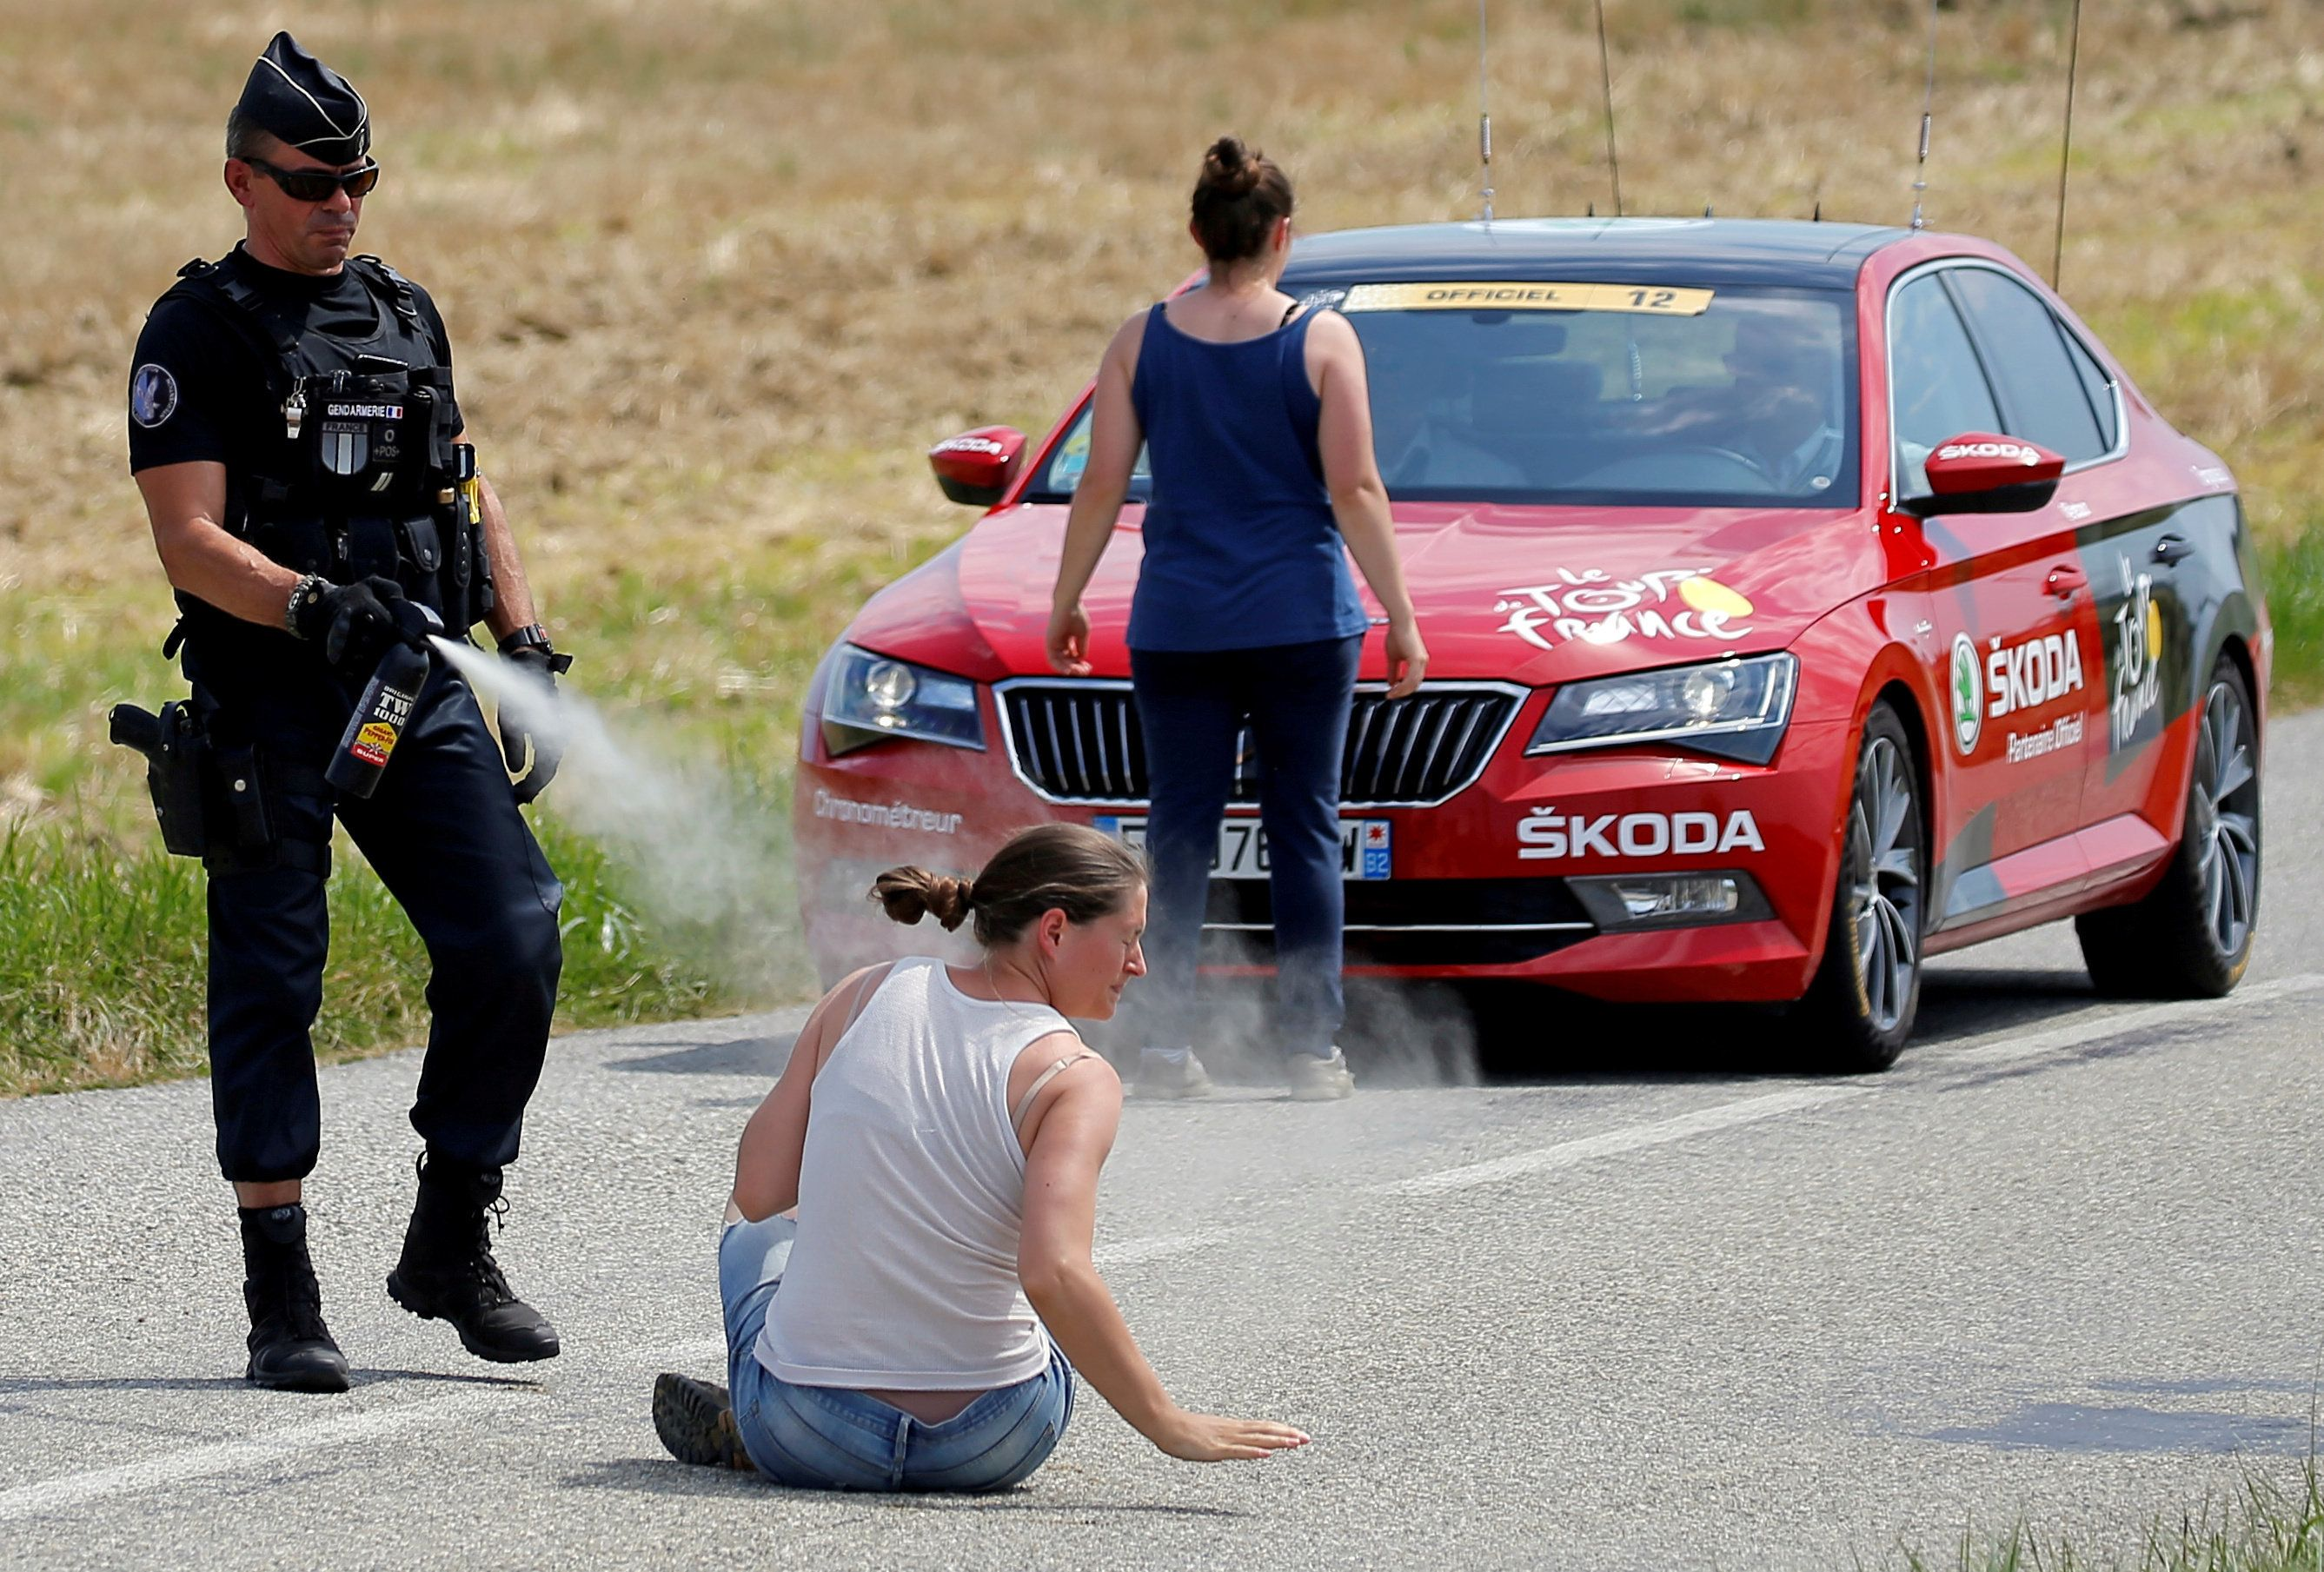 Protesters halt Tour de France as tear gas affects riders